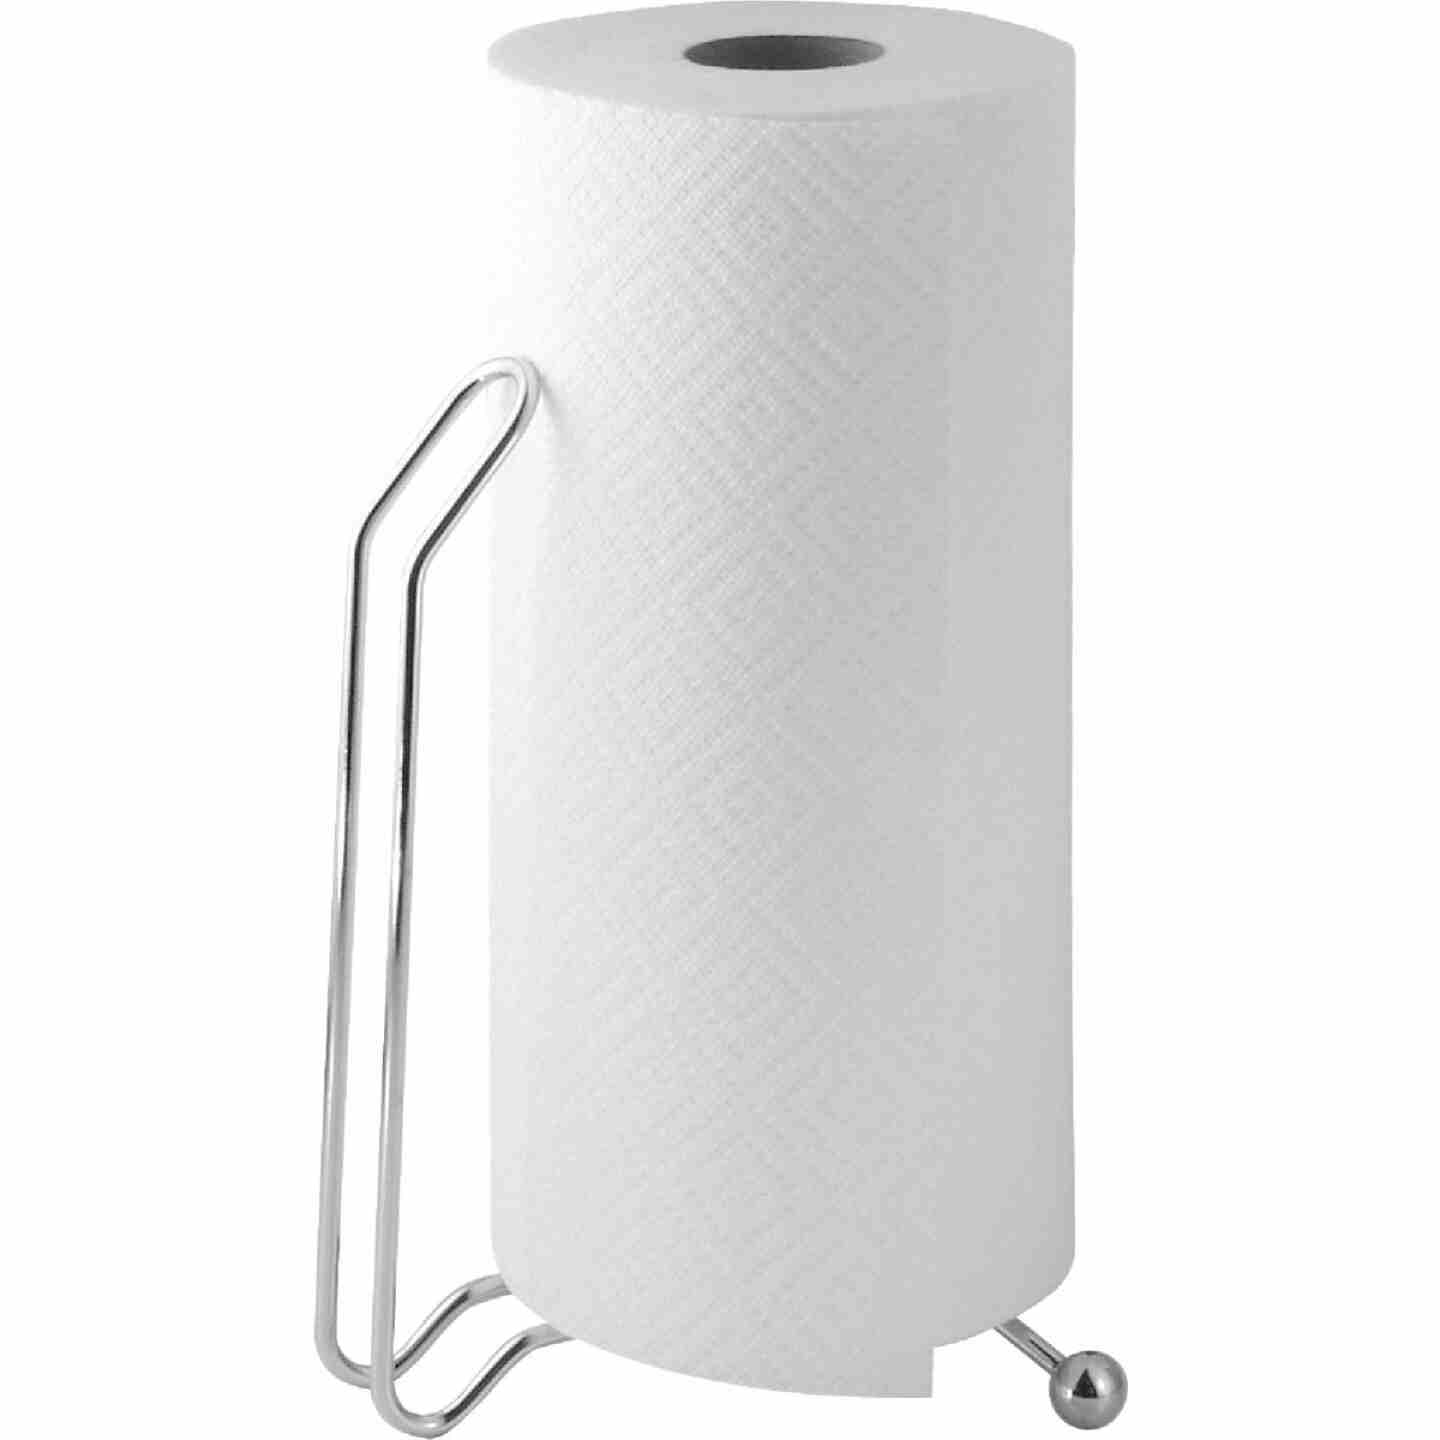 InterDesign Aria Paper Towel Holder Stand Image 3